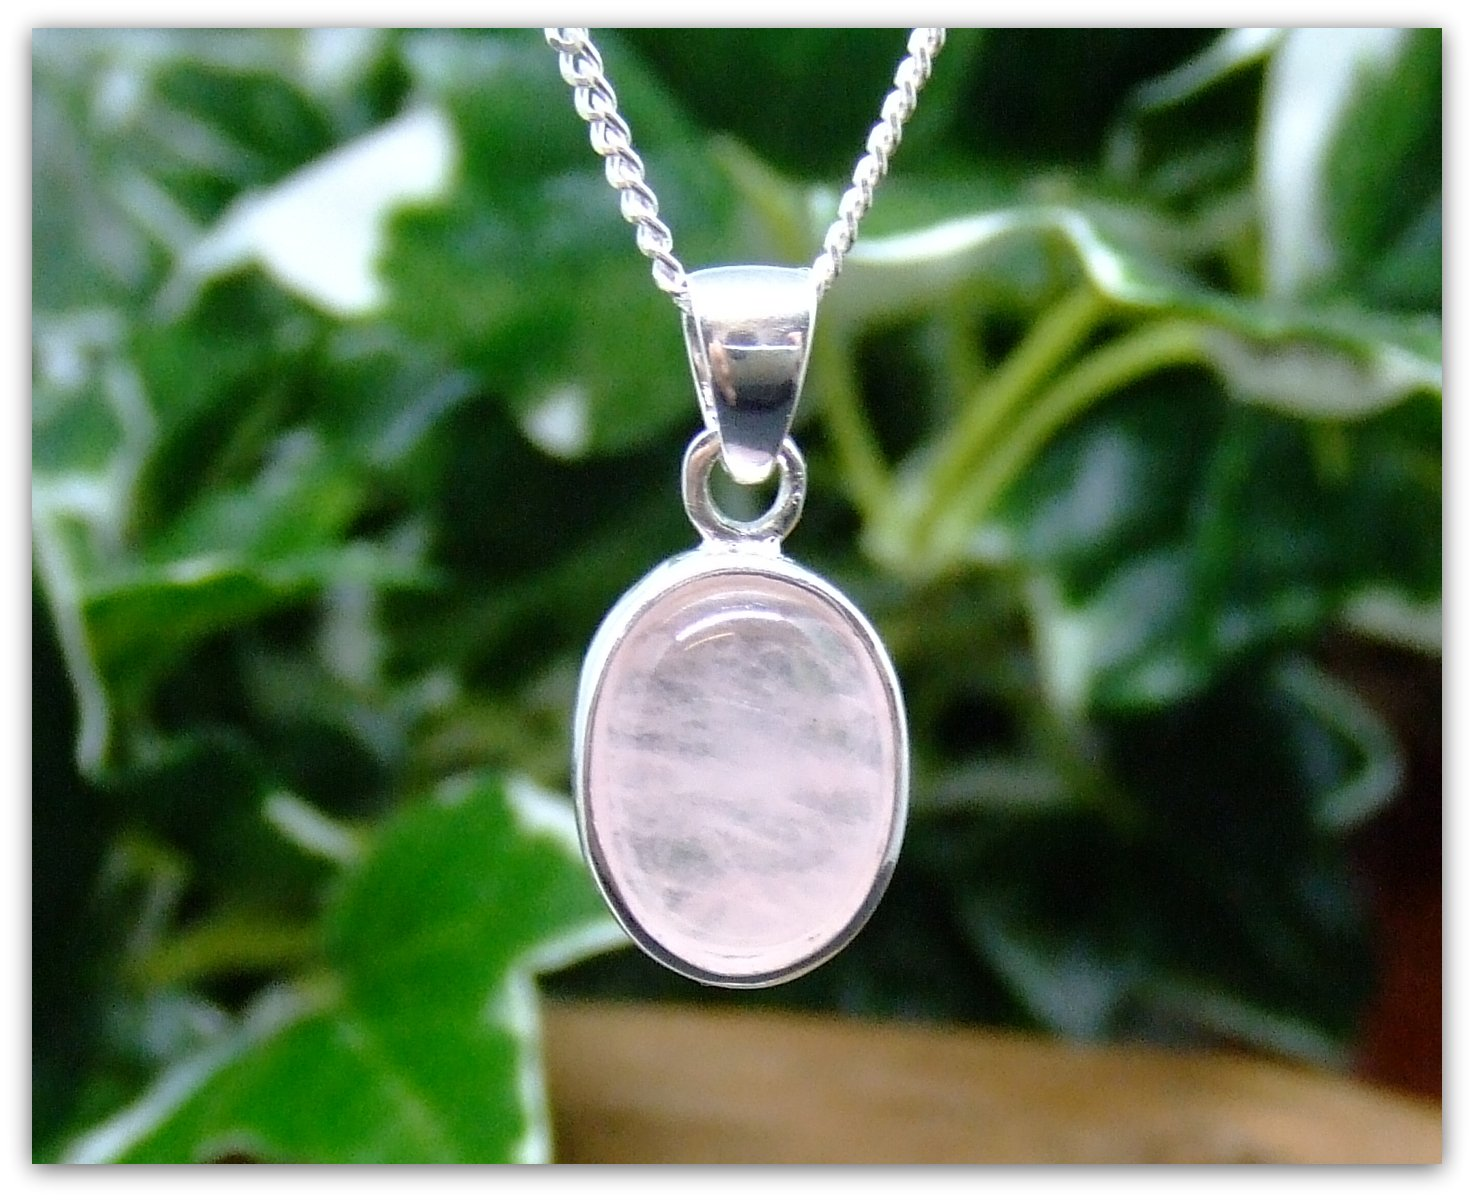 Rose Quartz Silver Pendant Necklace Oval design in .925 silver 18 silver chain Christmas gift birthday gift for her mother gift bridesmaid